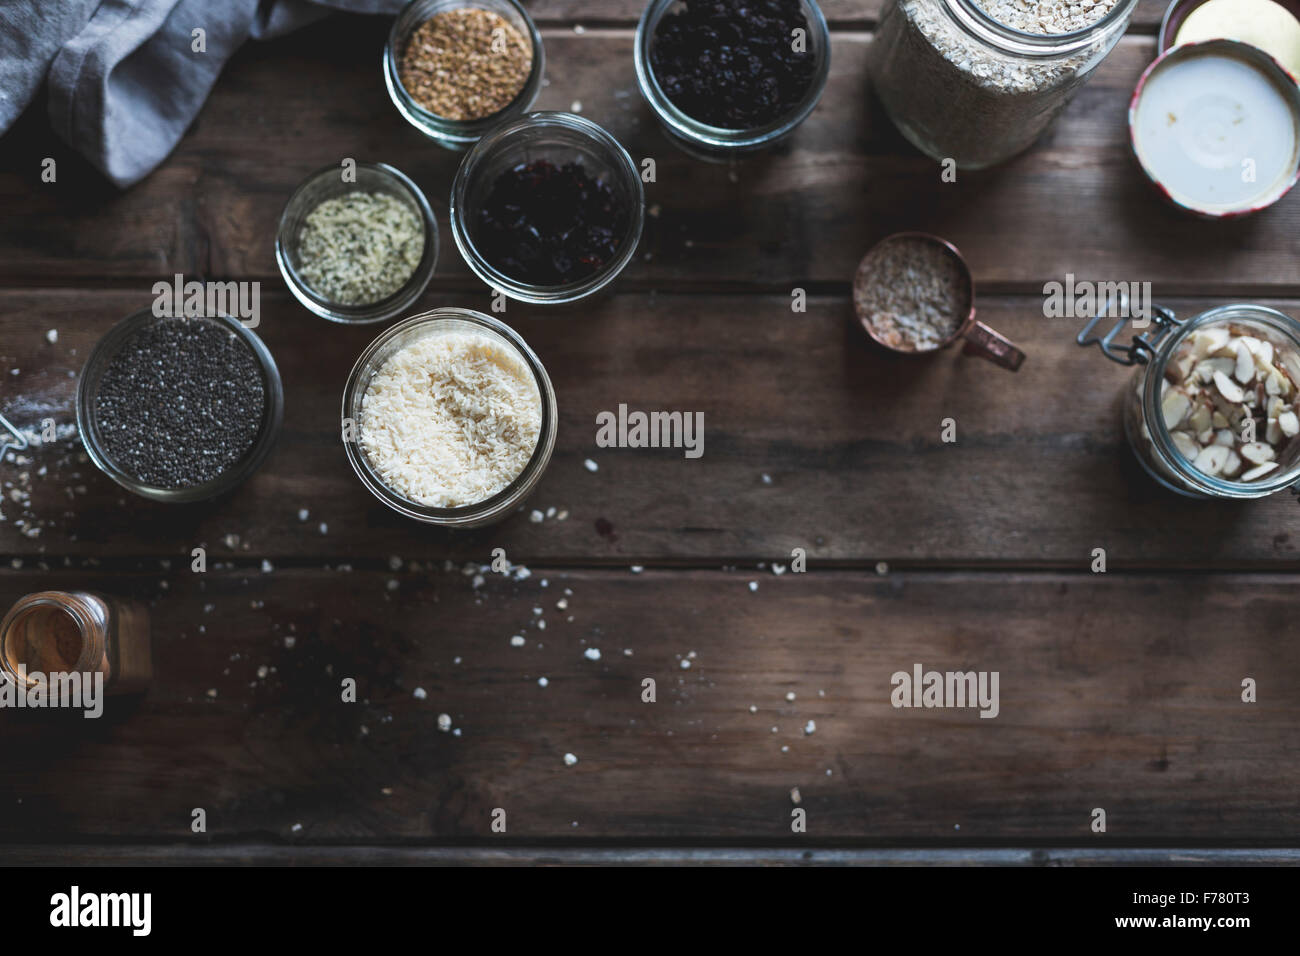 Various kitchen ingredients in pots for cookery - Stock Image